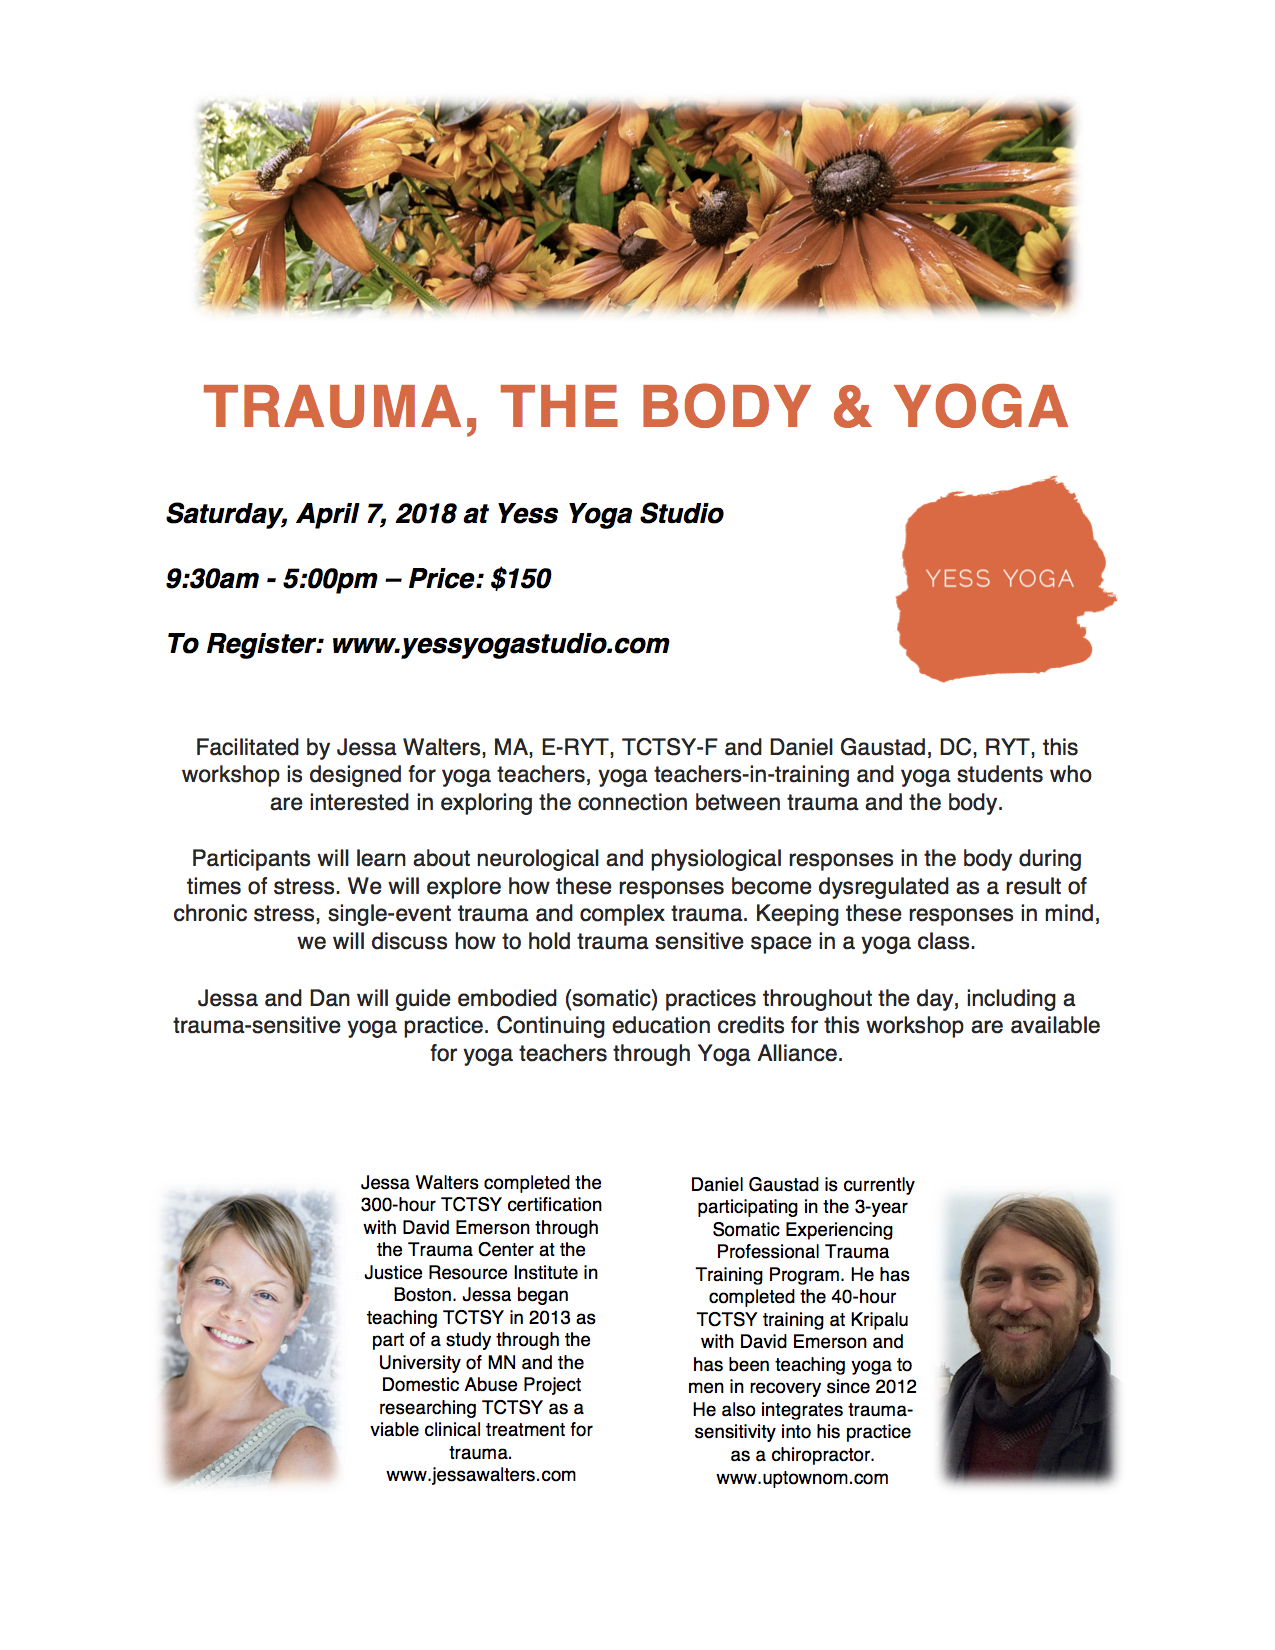 Trauma, The Body and Yoga at Yess Yoga Studio - April 7, 2018